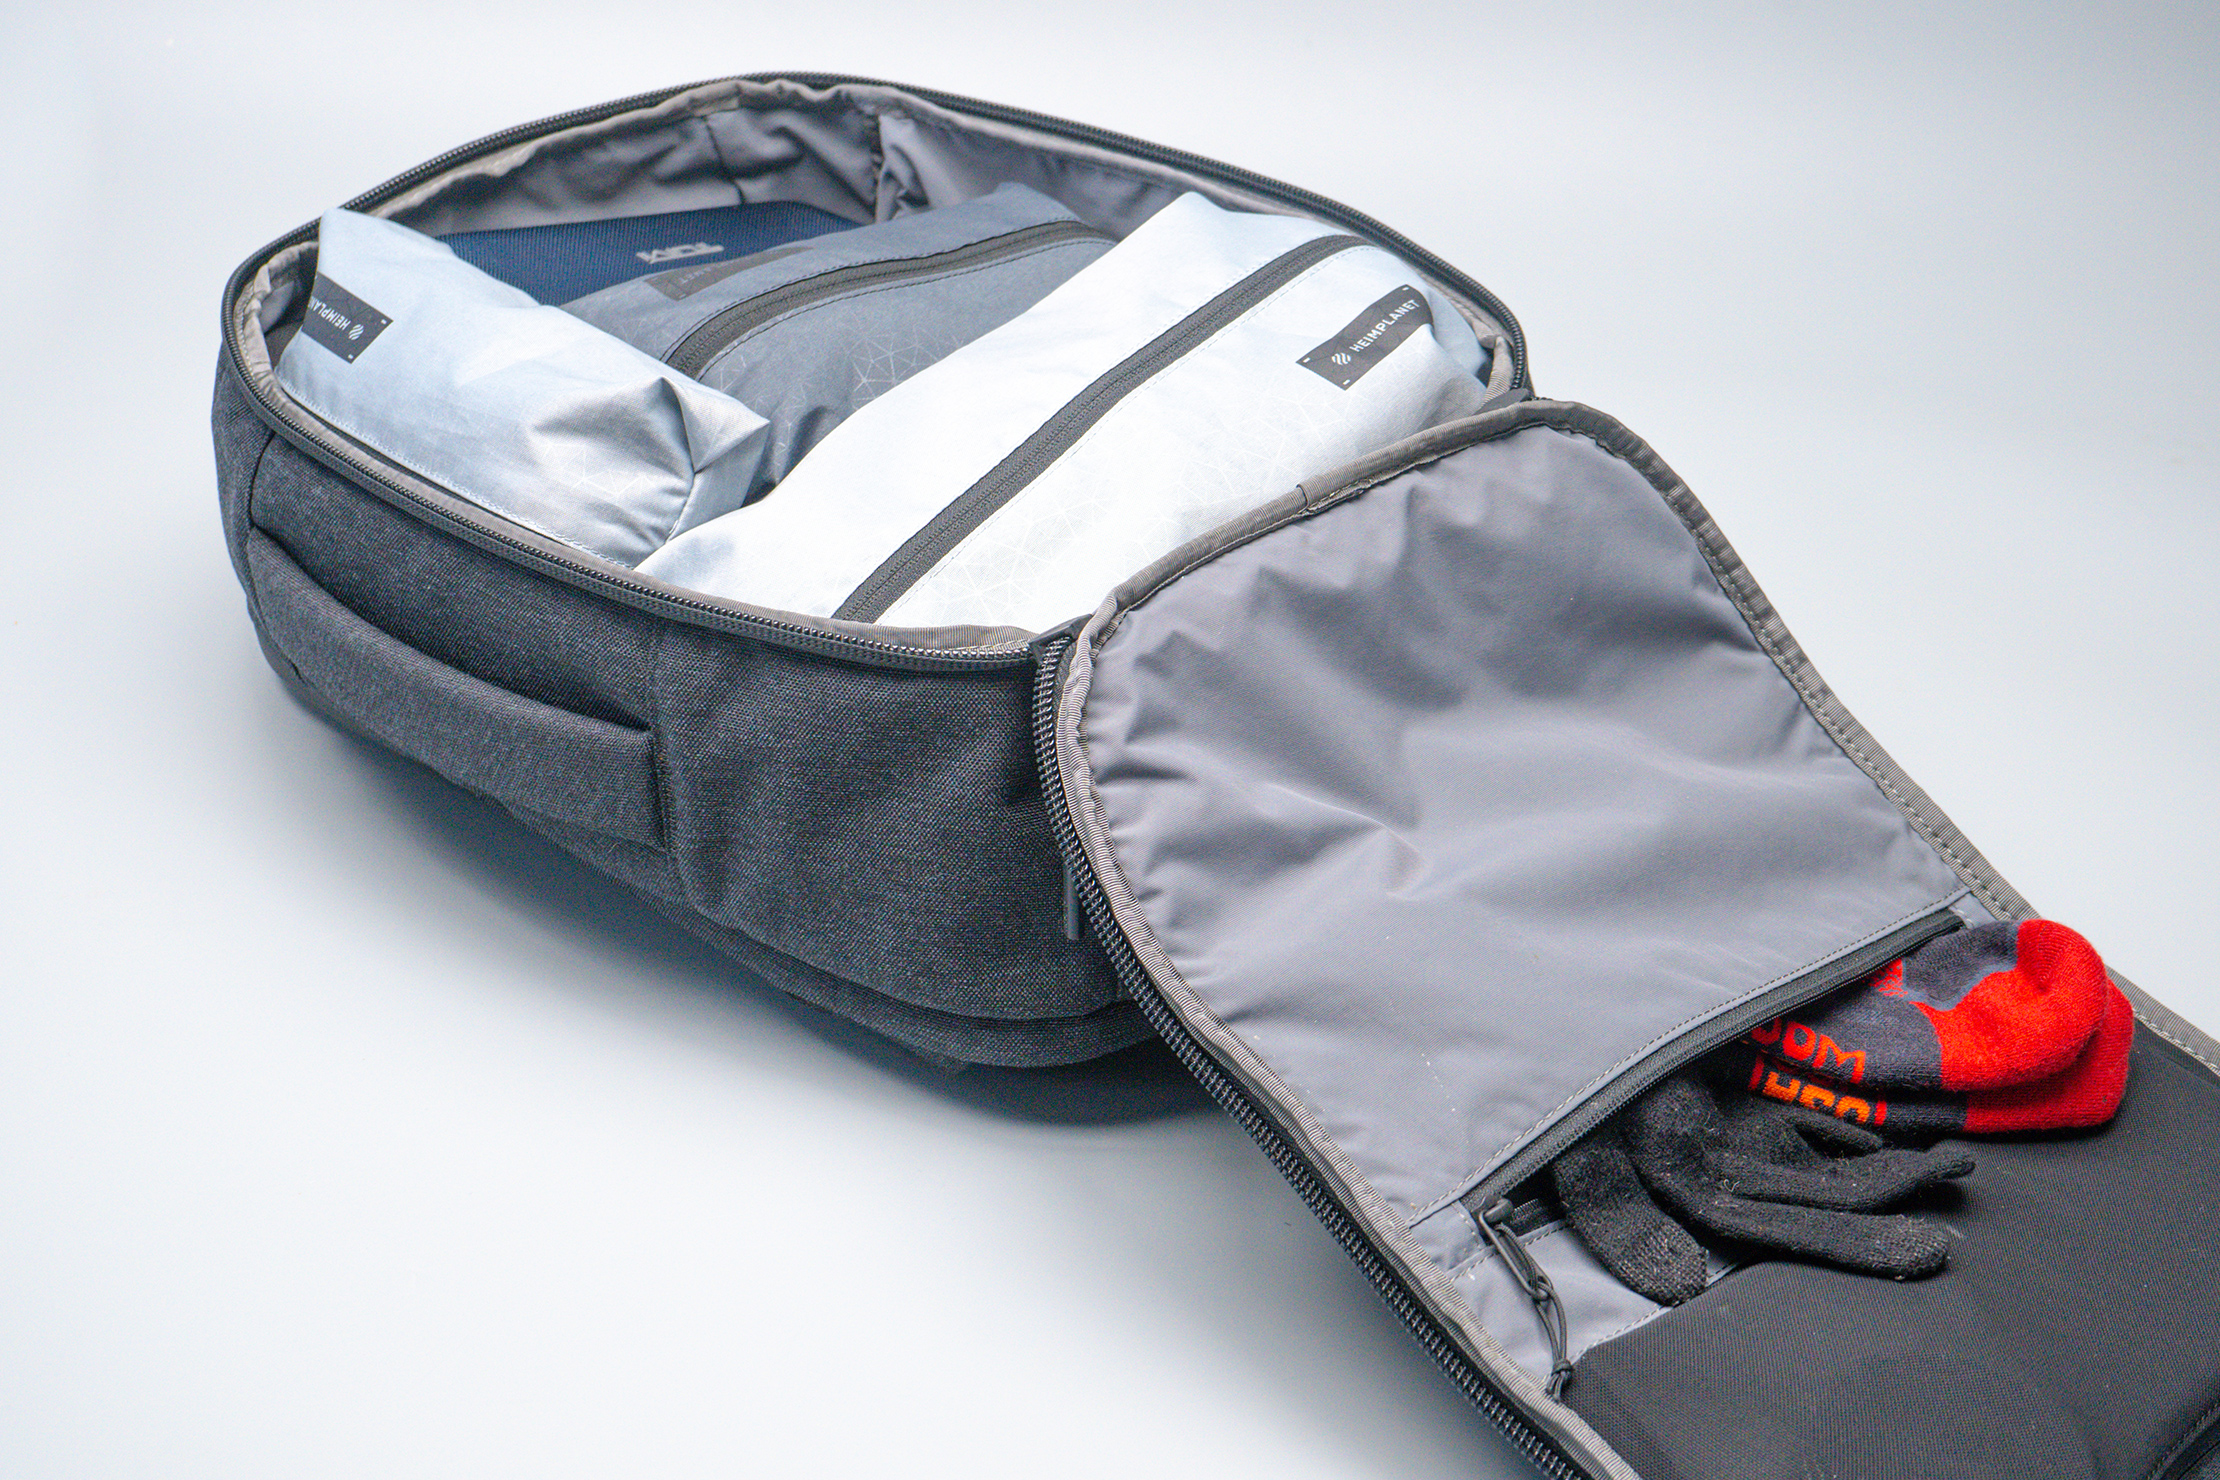 Aer x Ministry of Supply Lunar Pack Main Compartment Filled